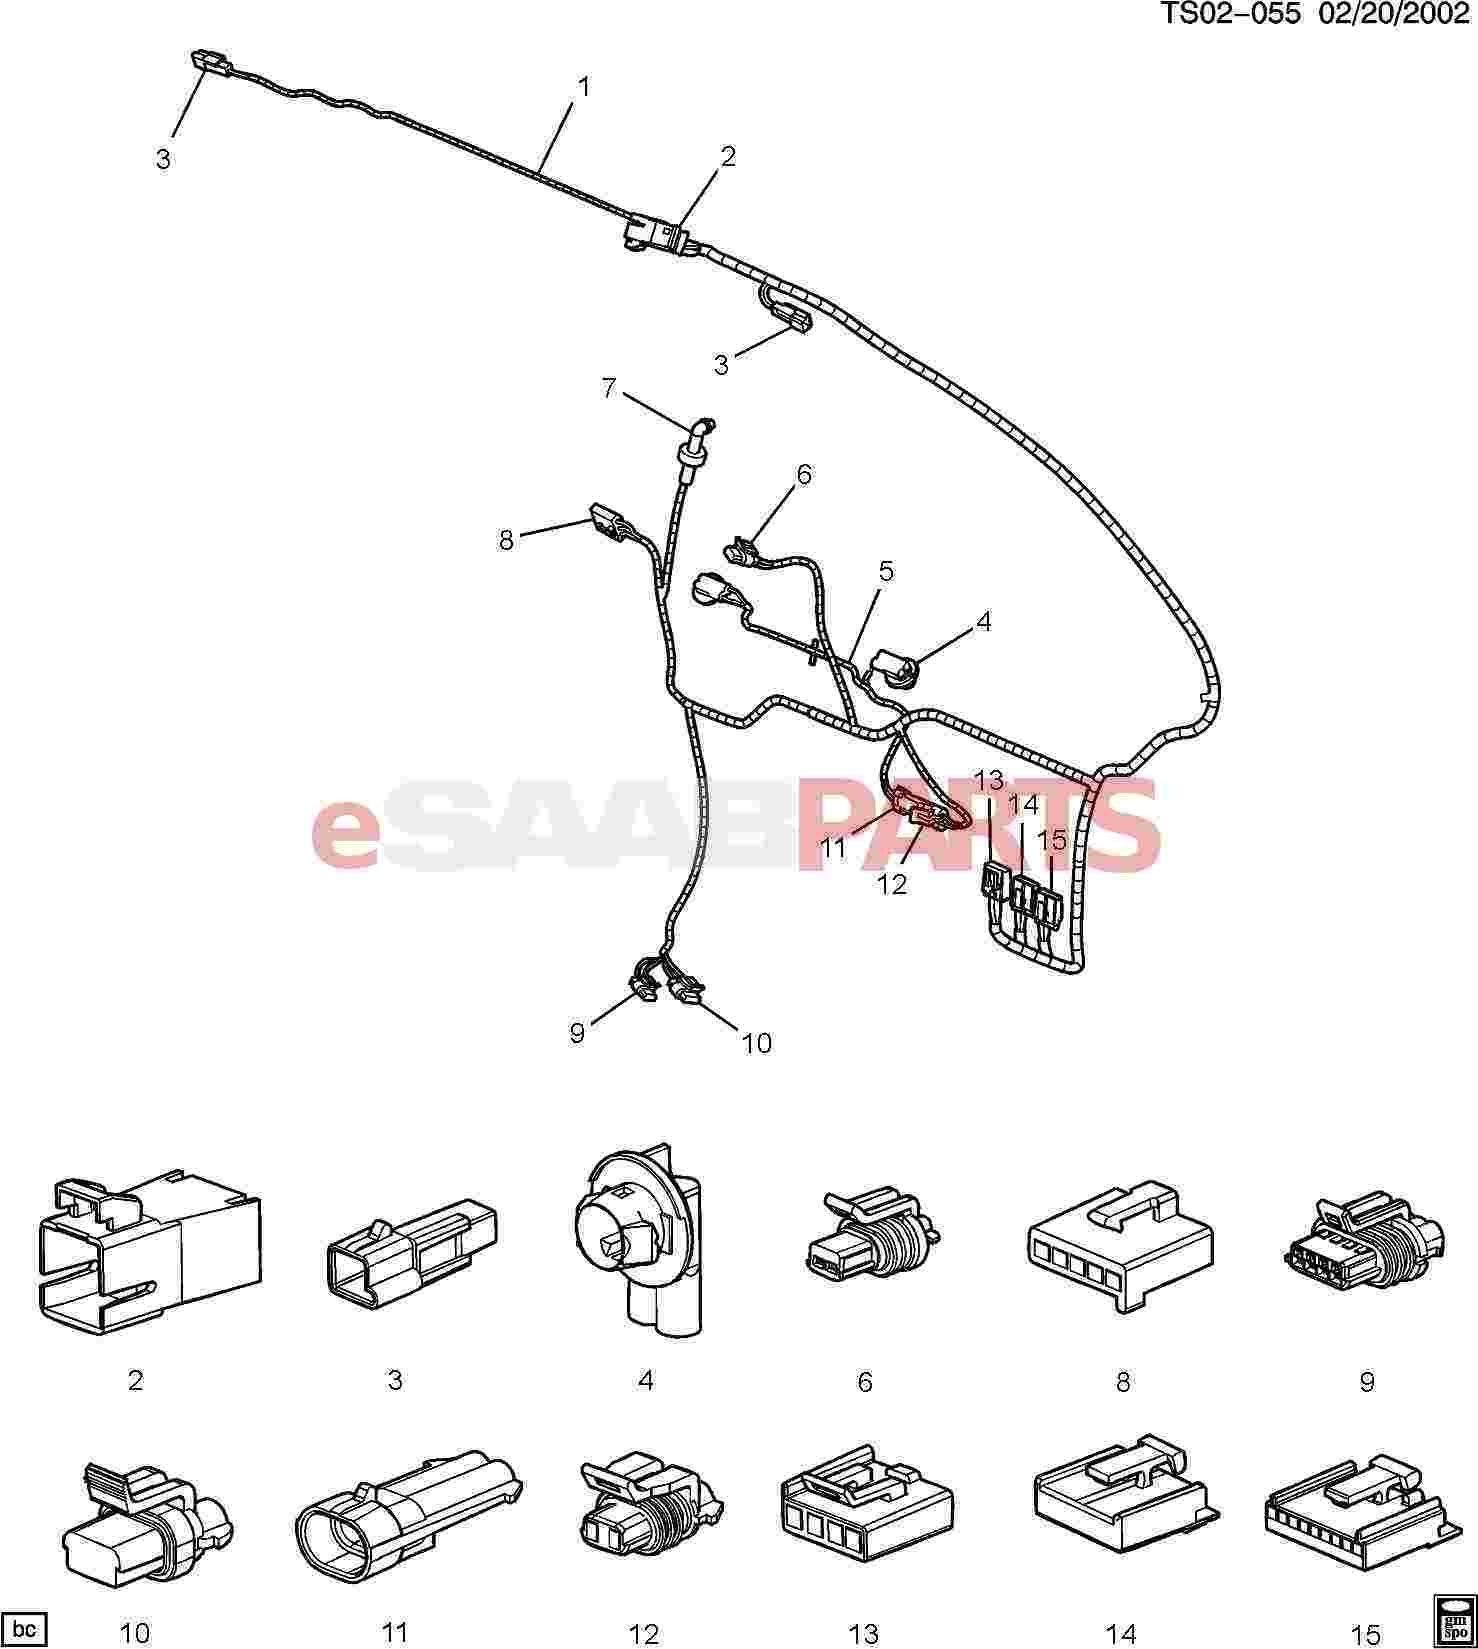 hight resolution of esaabparts com saab 9 7x electrical parts wiring harness wiring harness lift gate